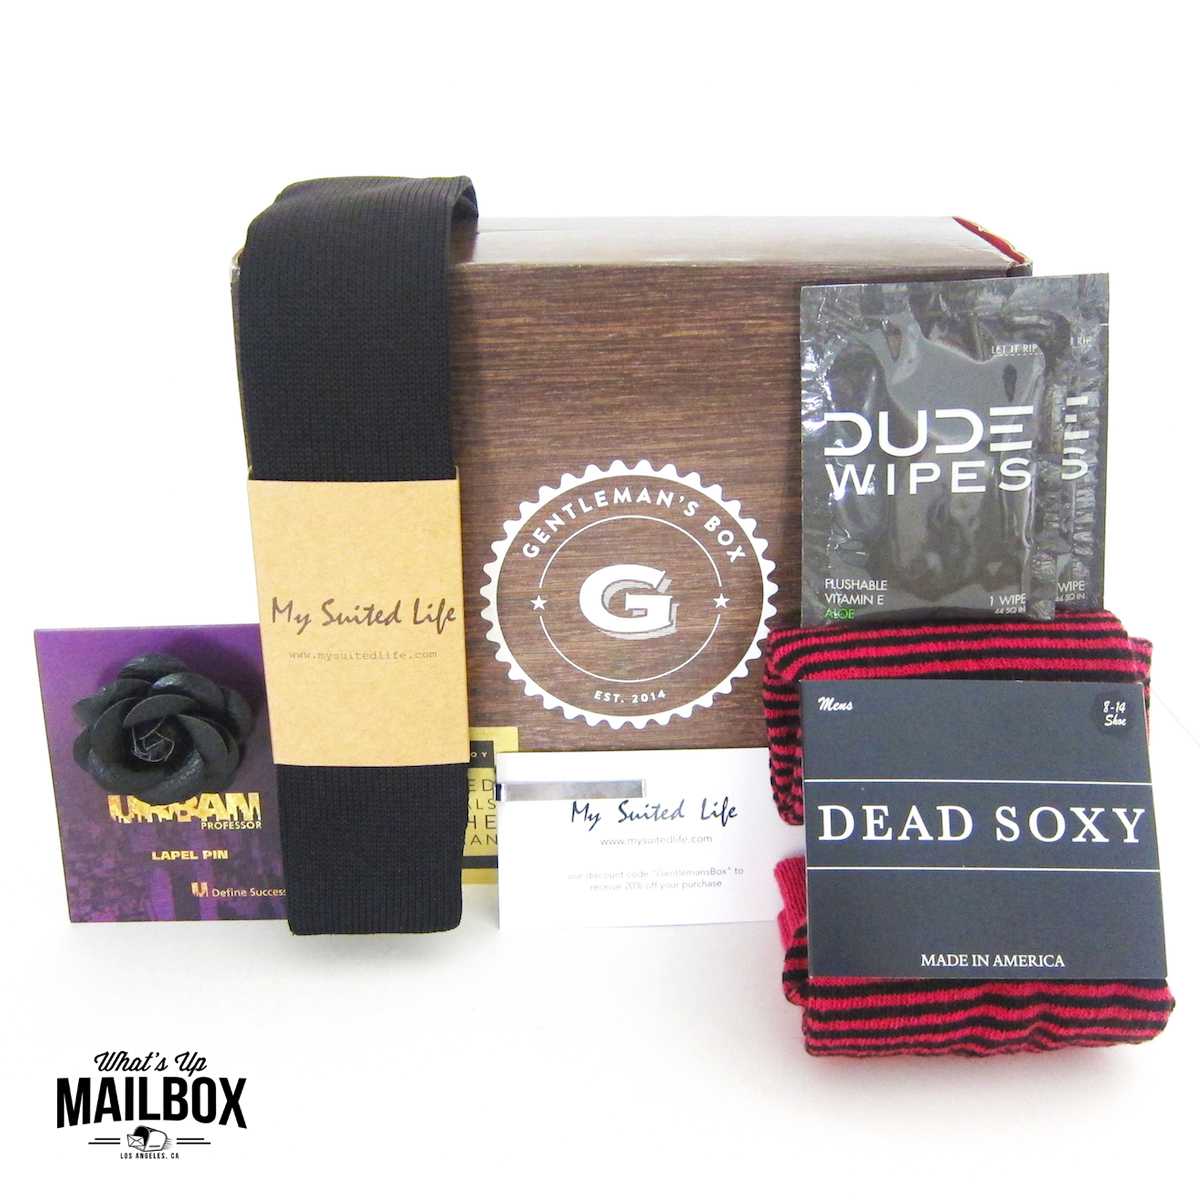 Gentleman's Box February 2016 Review!